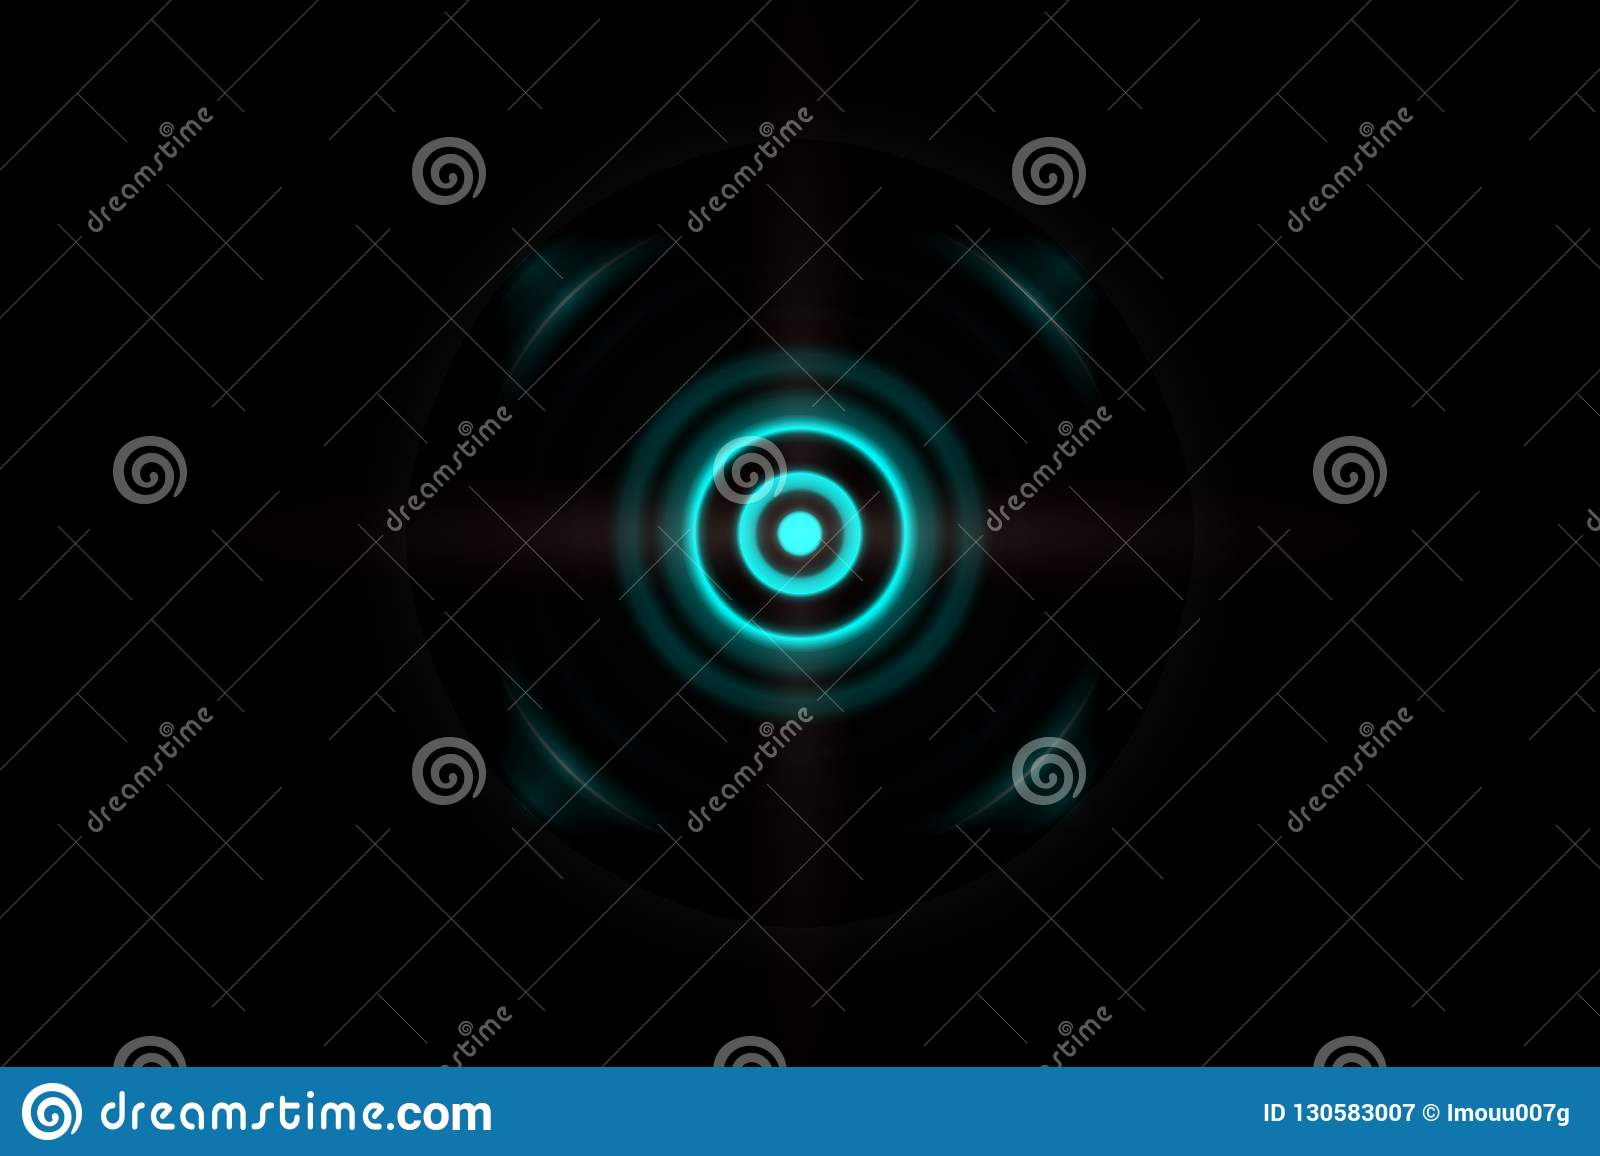 Abstract eye dark green effect with sound waves oscillating background